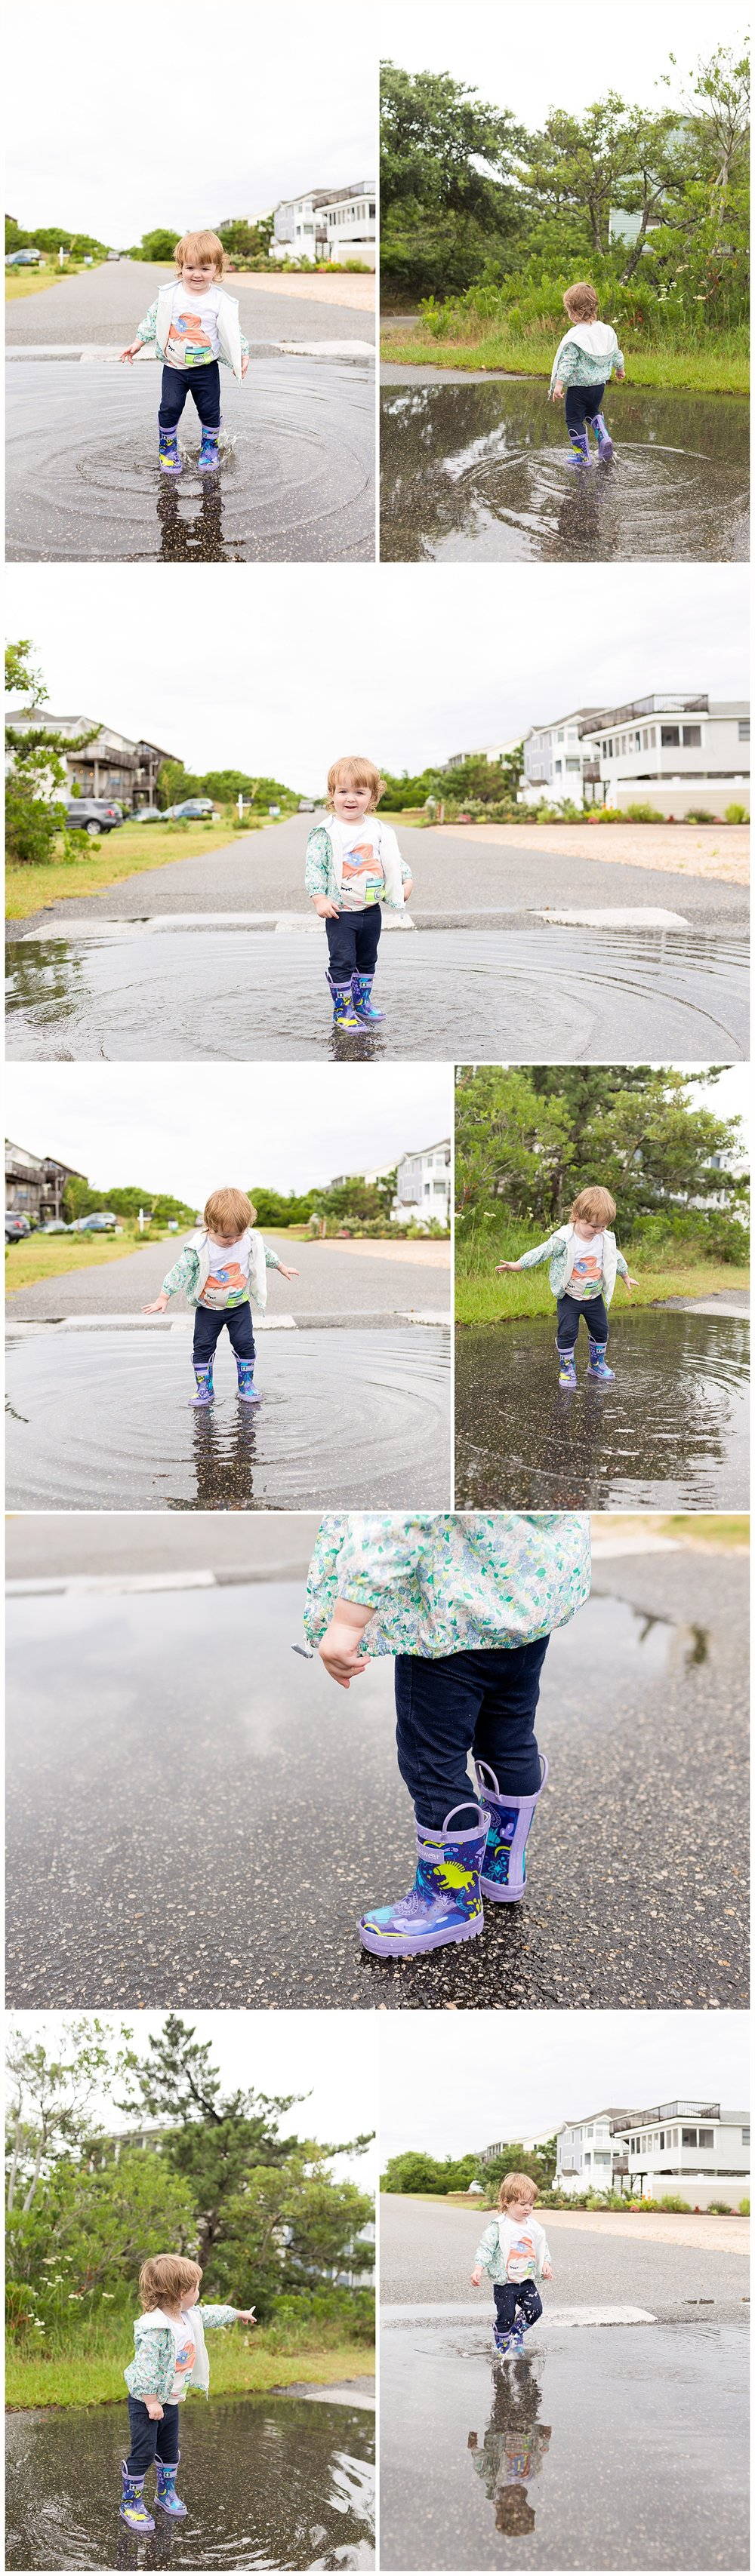 toddler girl splashing in rain puddles in rain boots - Duck, North Carolina